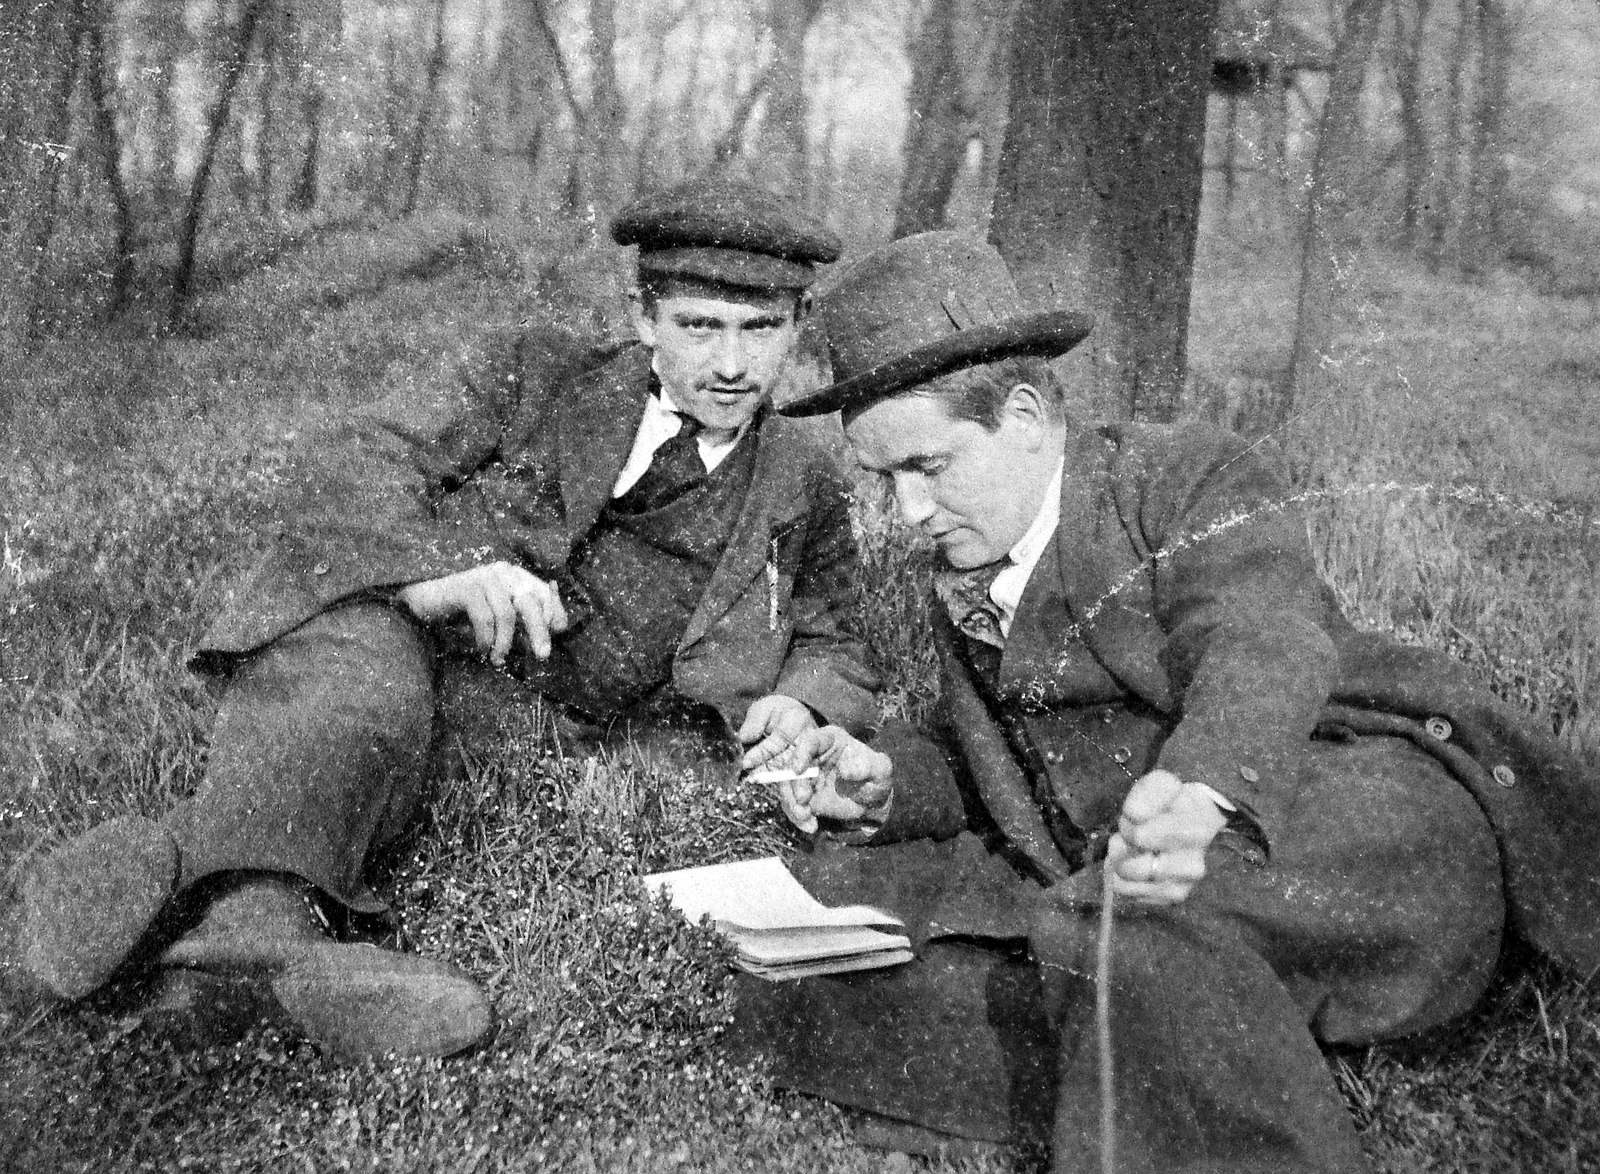 Men reading in the woods